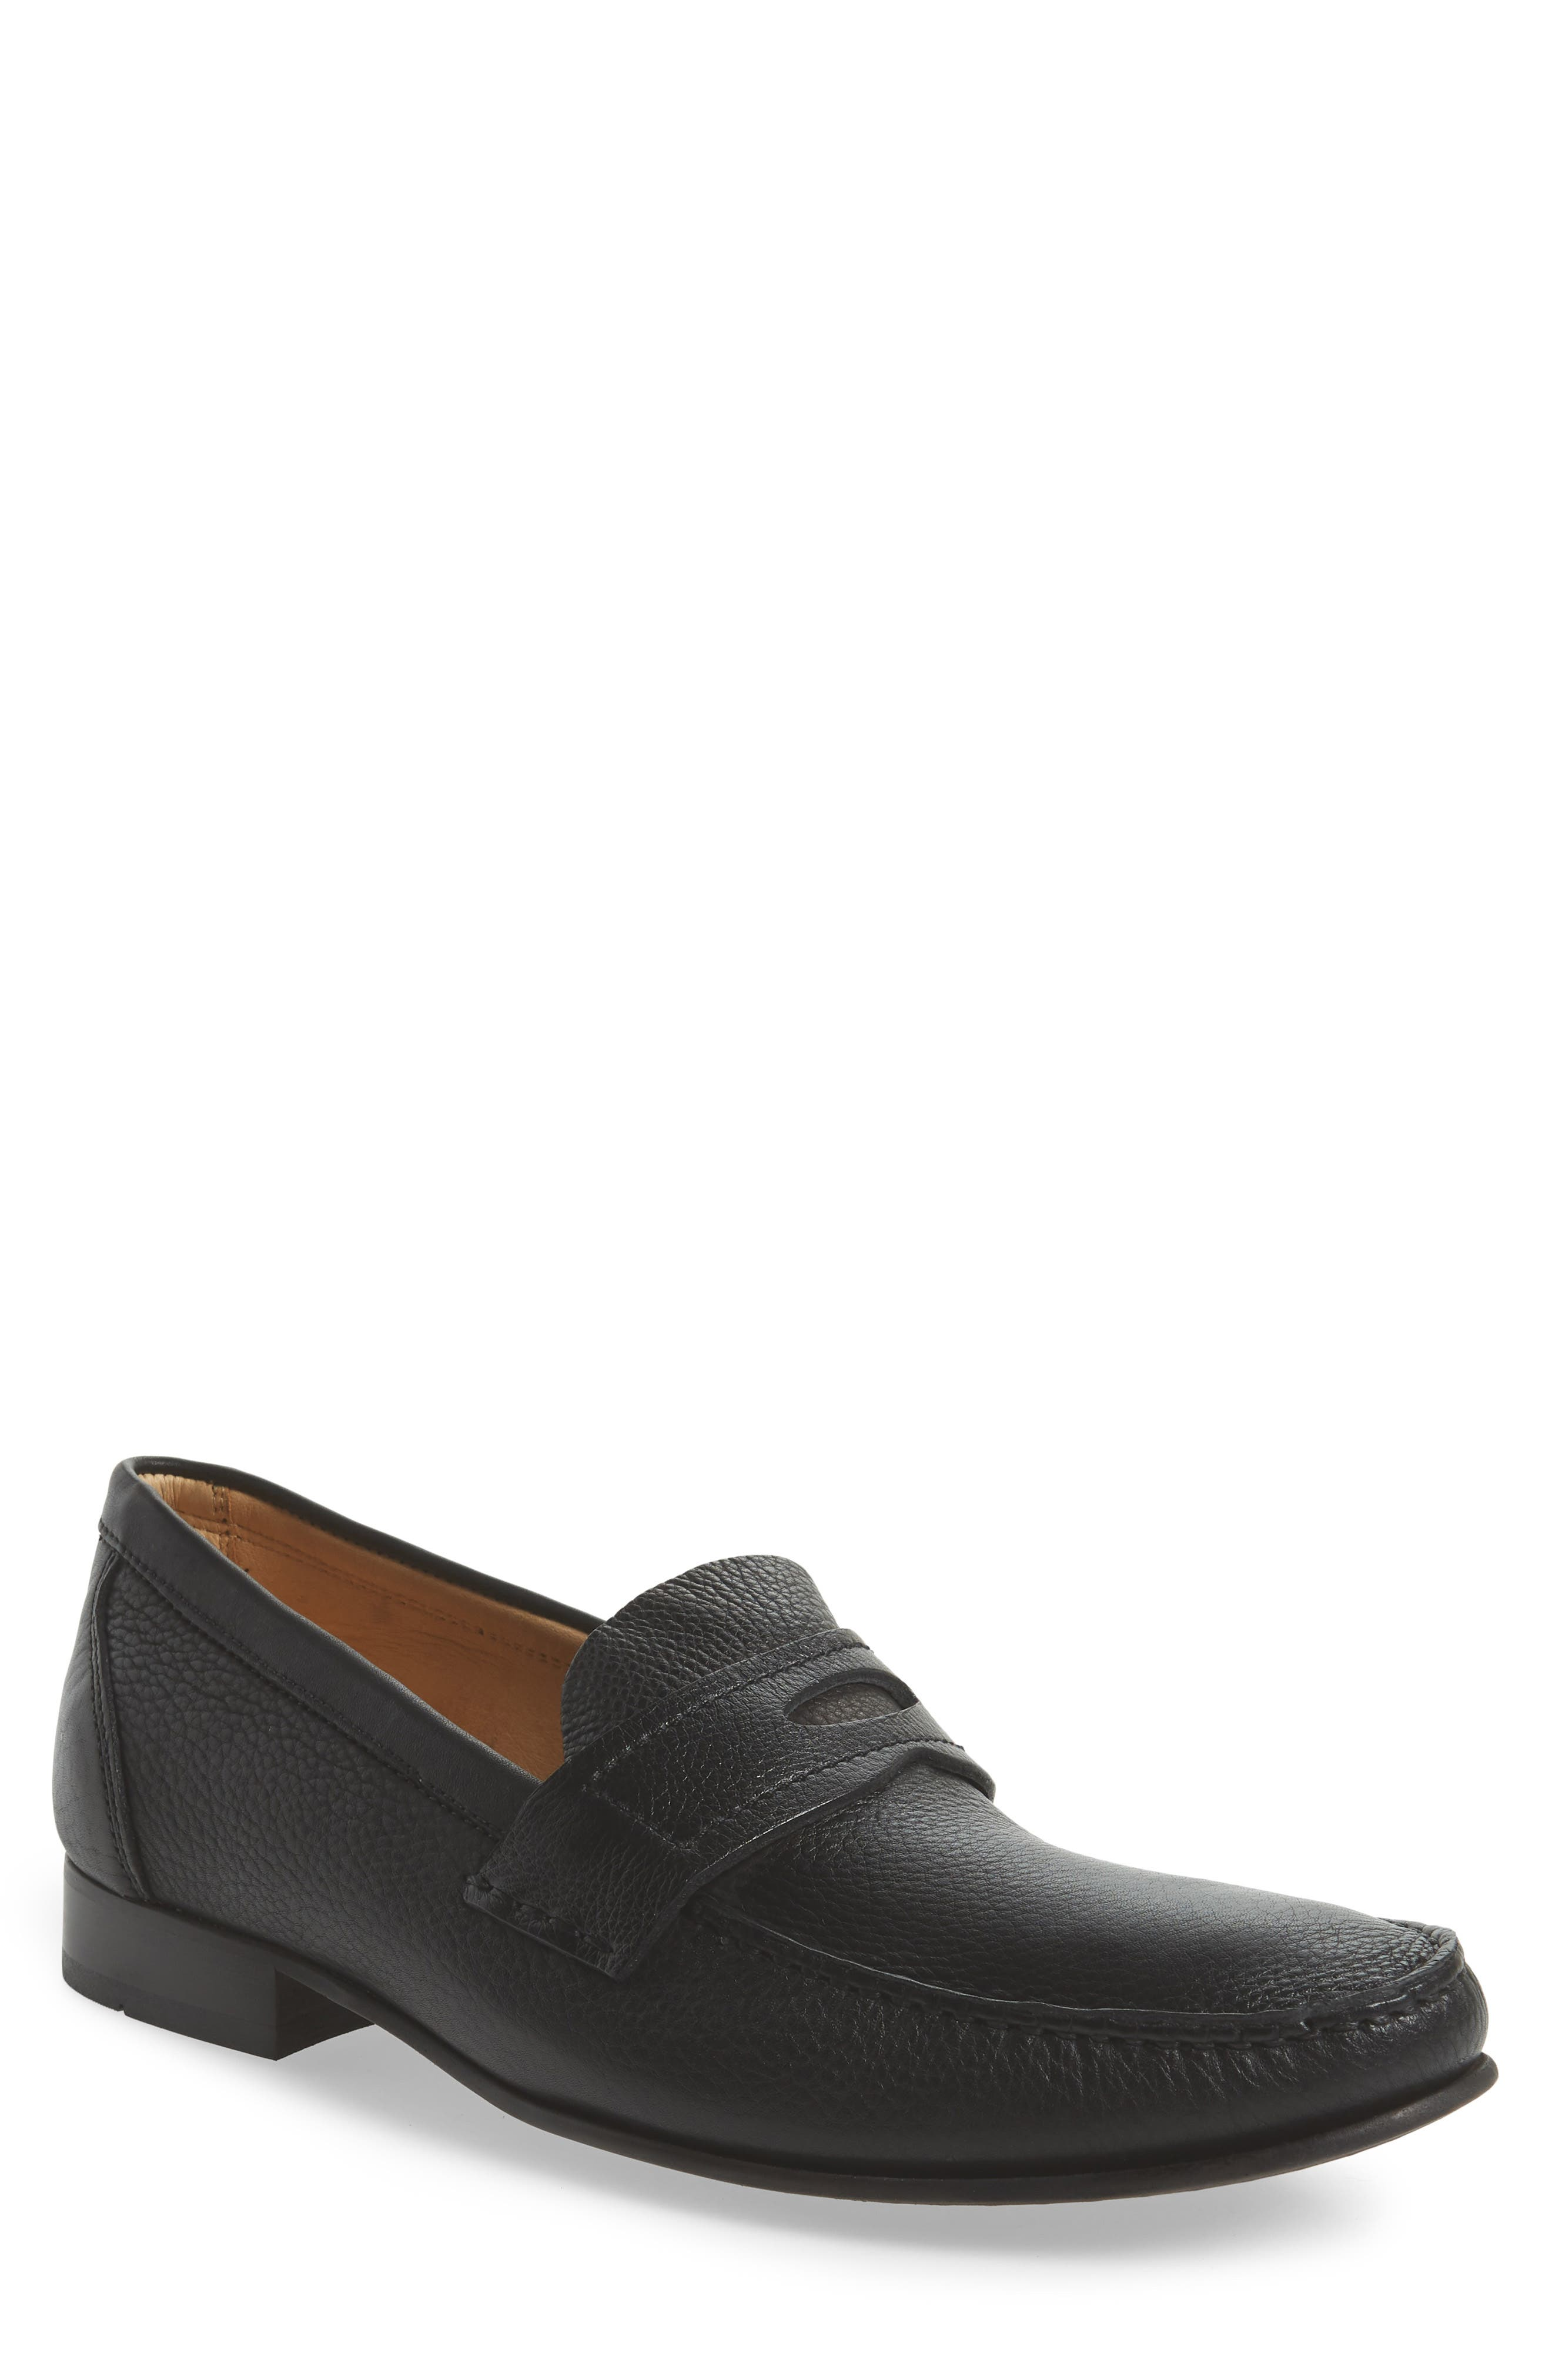 Eric Moc Toe Slip-On Loafer,                         Main,                         color, 001